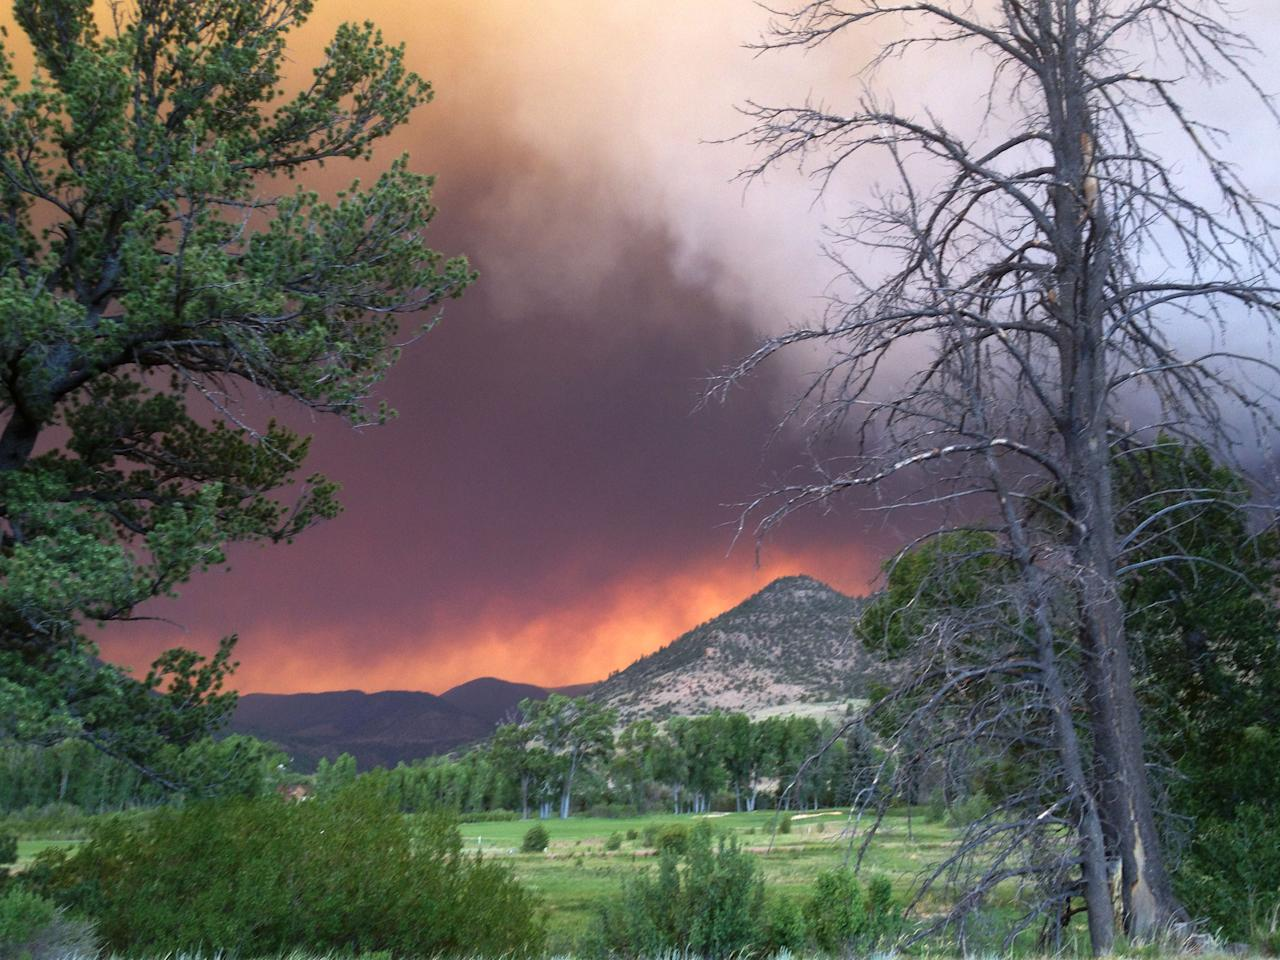 In this Thursday, June 20, 2013 photo provided by the U.S. Forest Service, wildfires fires approach the town of South Fork, Colo. The town of about 400 people was evacuated Friday morning, June 21, 2013. (AP Photo/U.S. Forest Service, Penny Bertram)